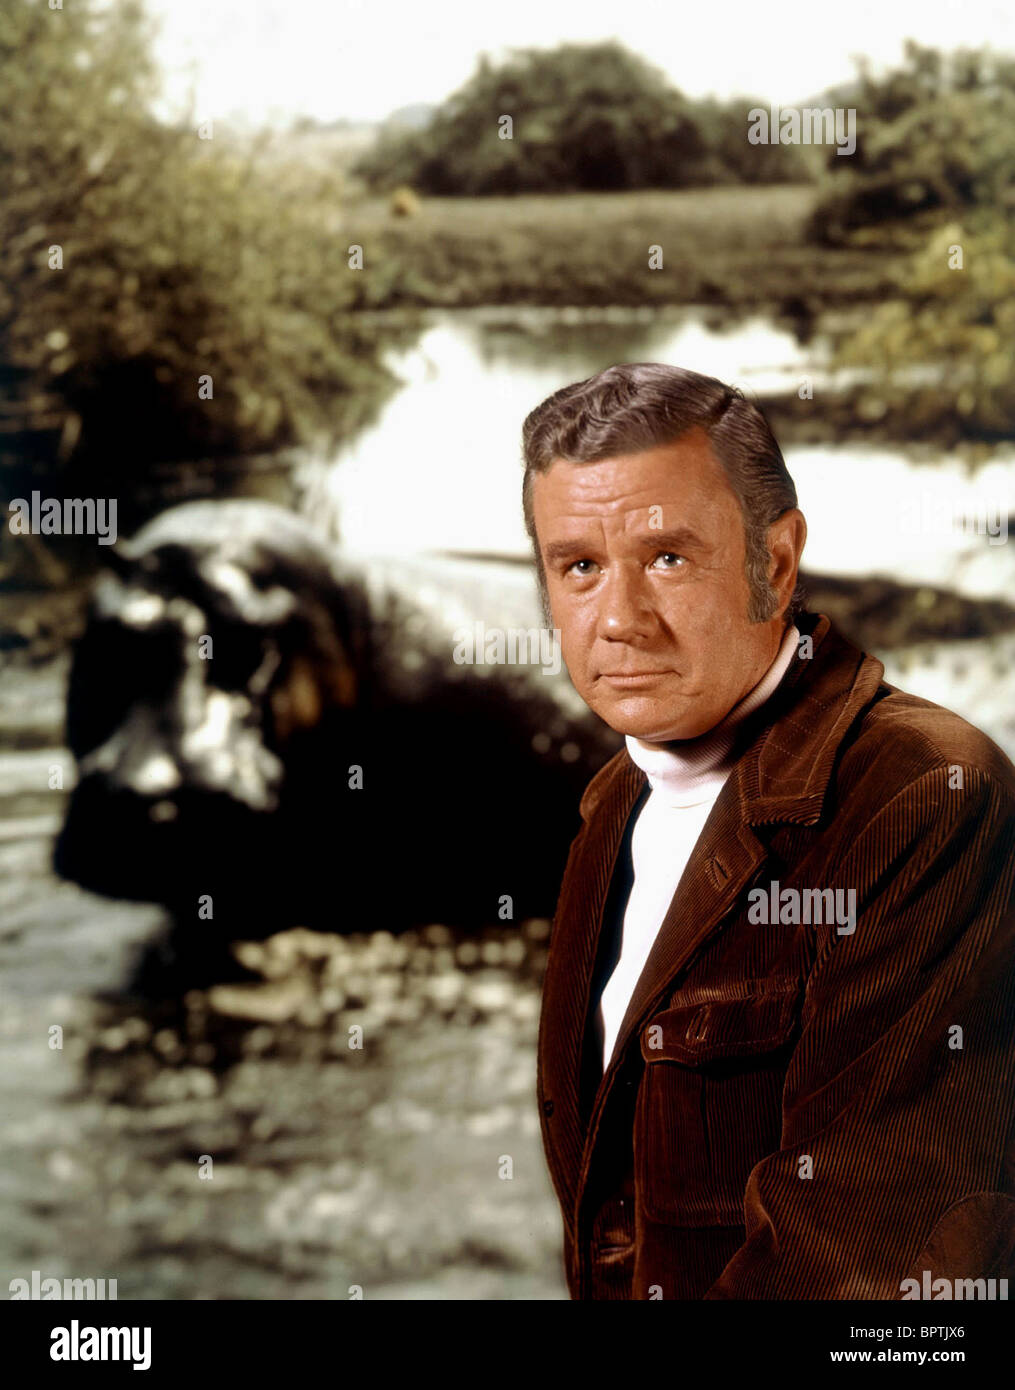 MARSHALL THOMPSON ACTOR (1977) - Stock Image